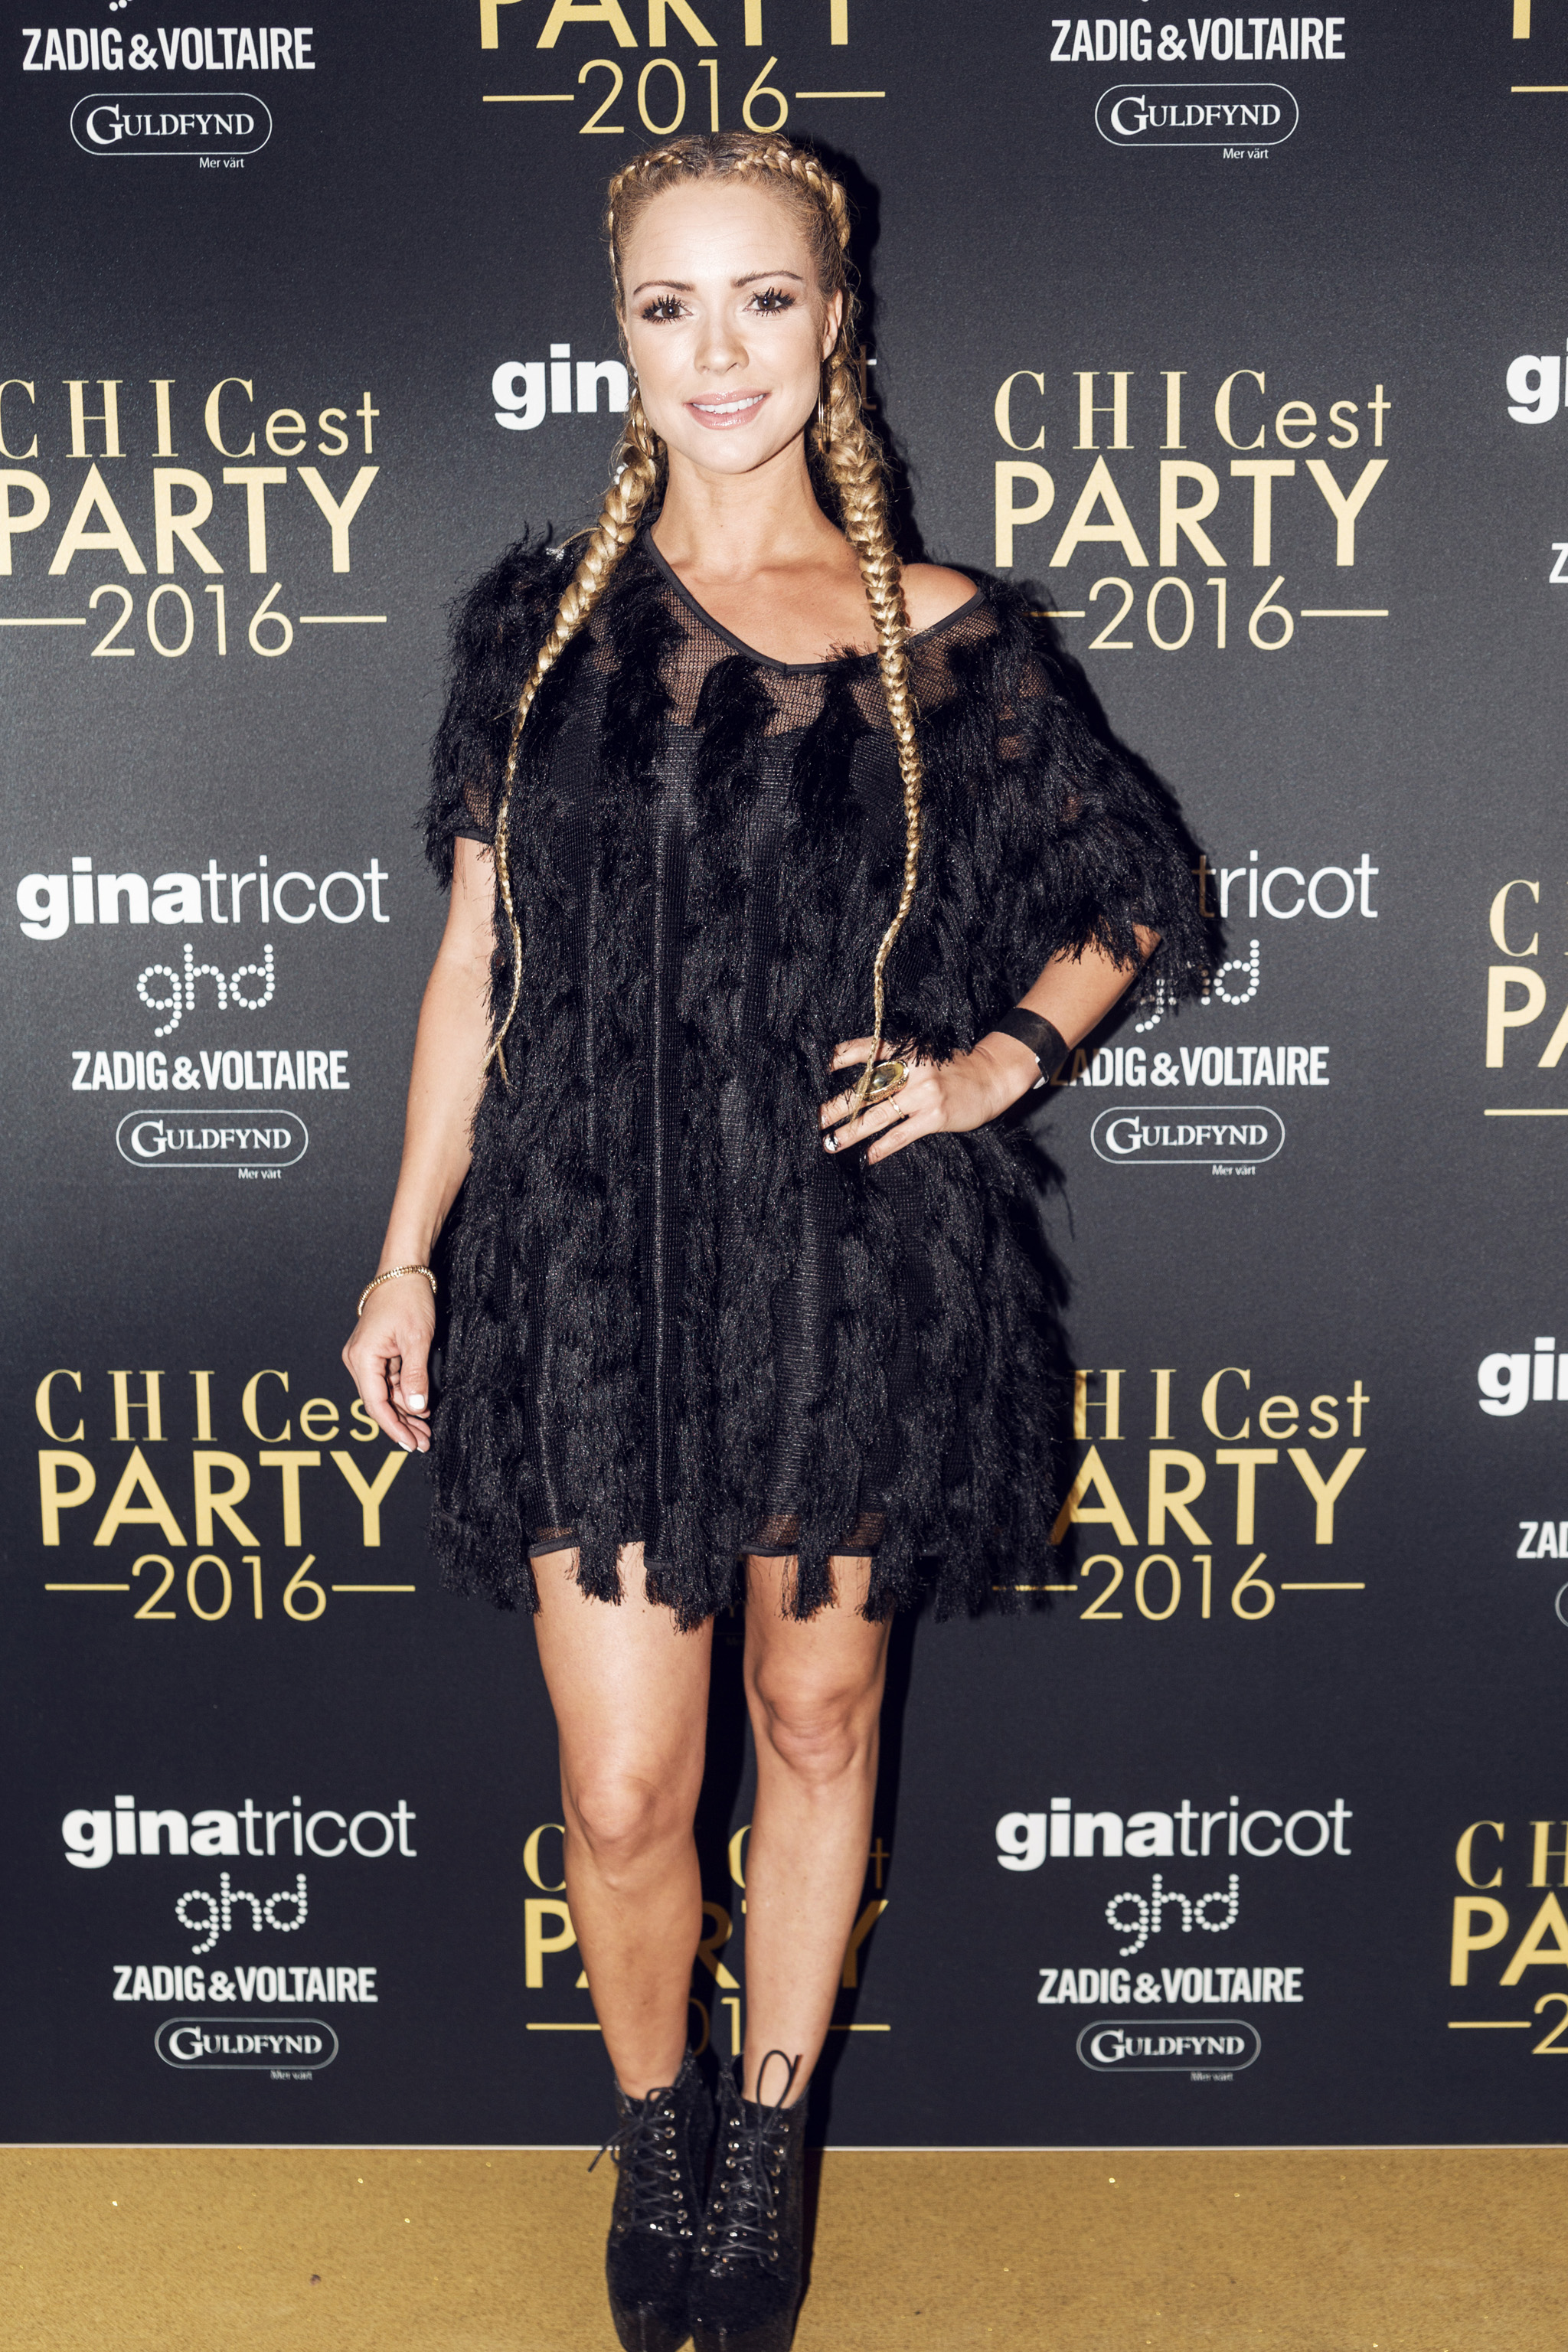 chicest party 2016 röda mattan